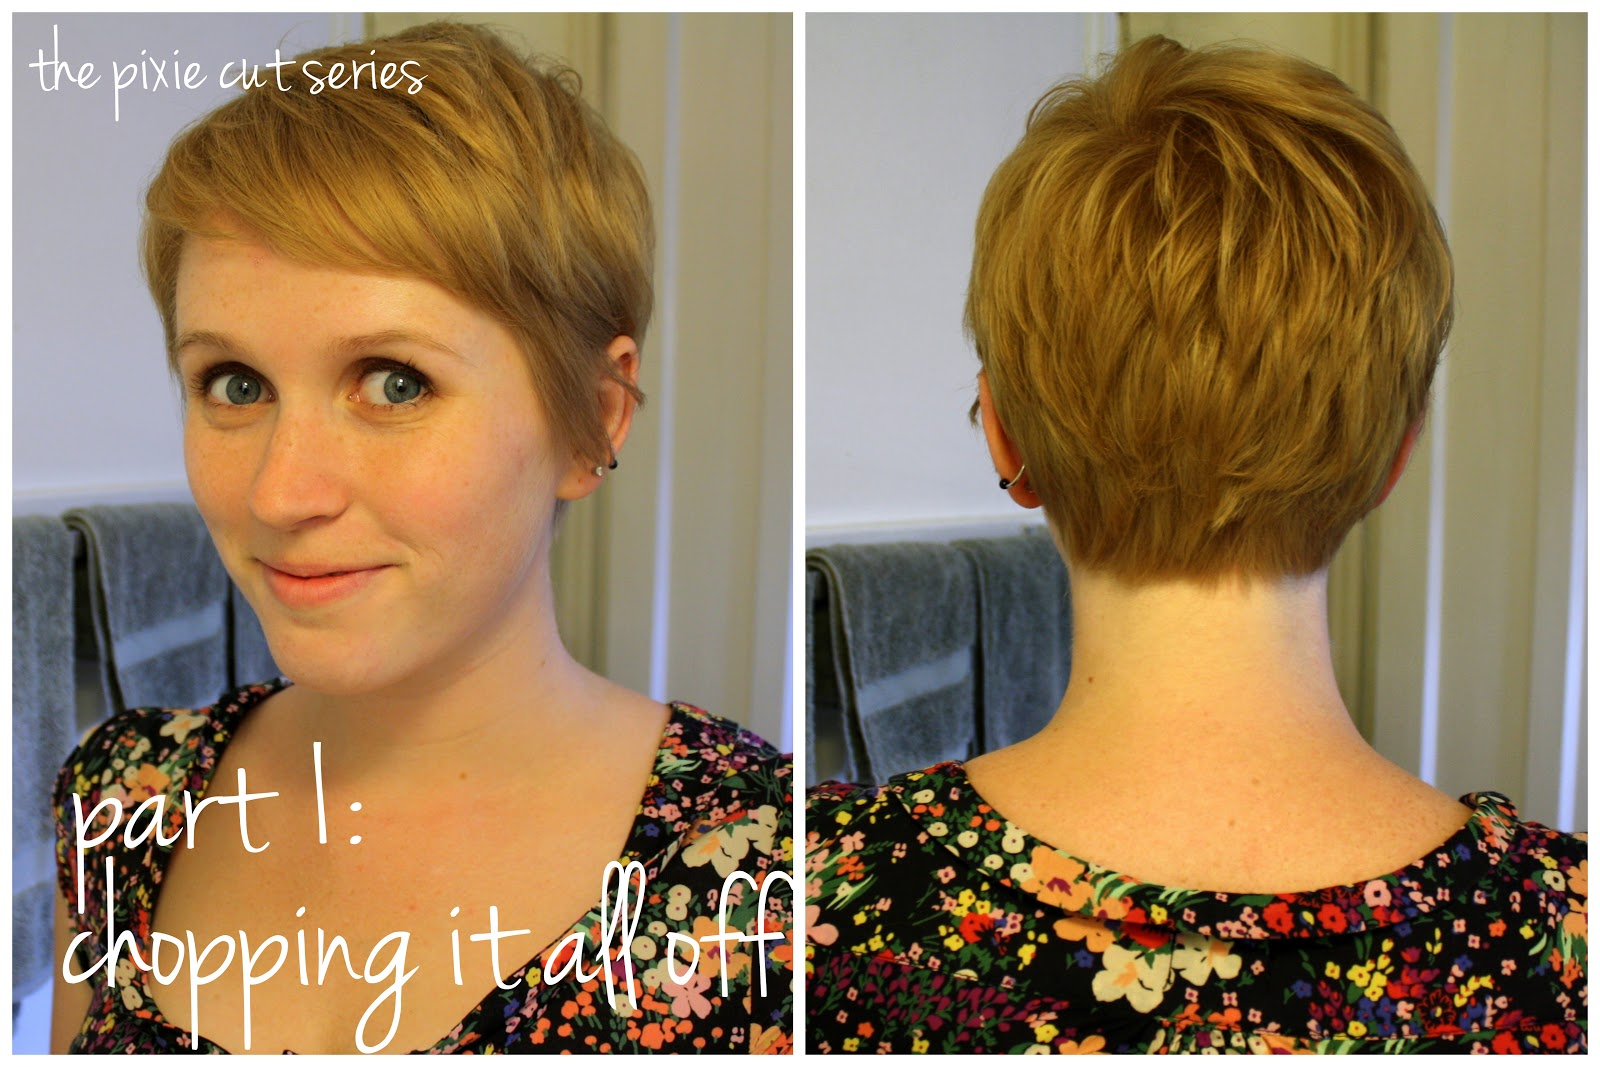 Pixie Cuts Back View http://www.unspeakablevisions.com/2012/04/pixie-cut-series-part-1-chopping-it-all.html